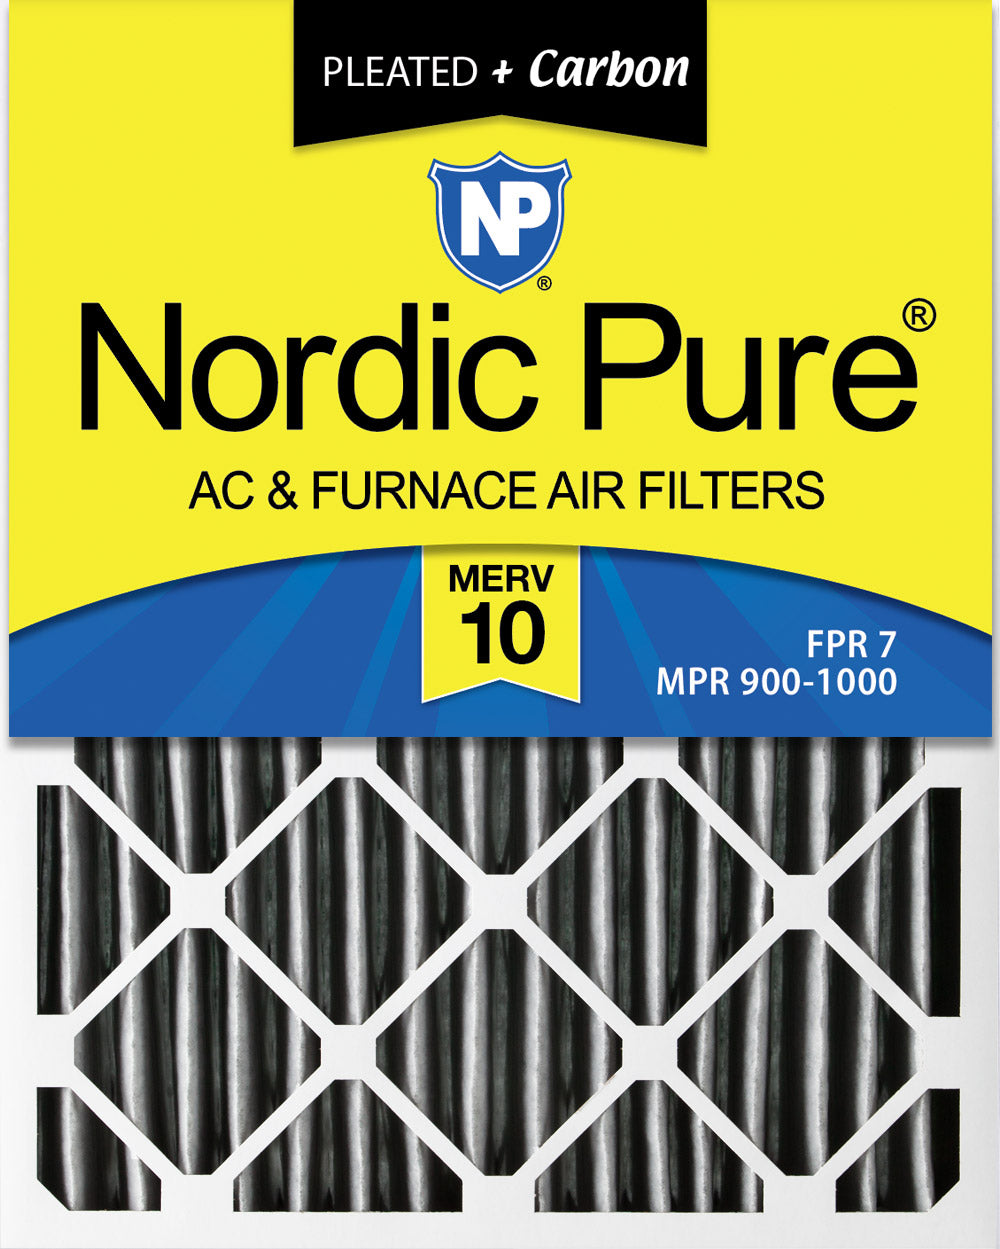 20x25x4 (3 5/8) Furnace Air Filters MERV 10 Pleated Plus Carbon 2 Pack